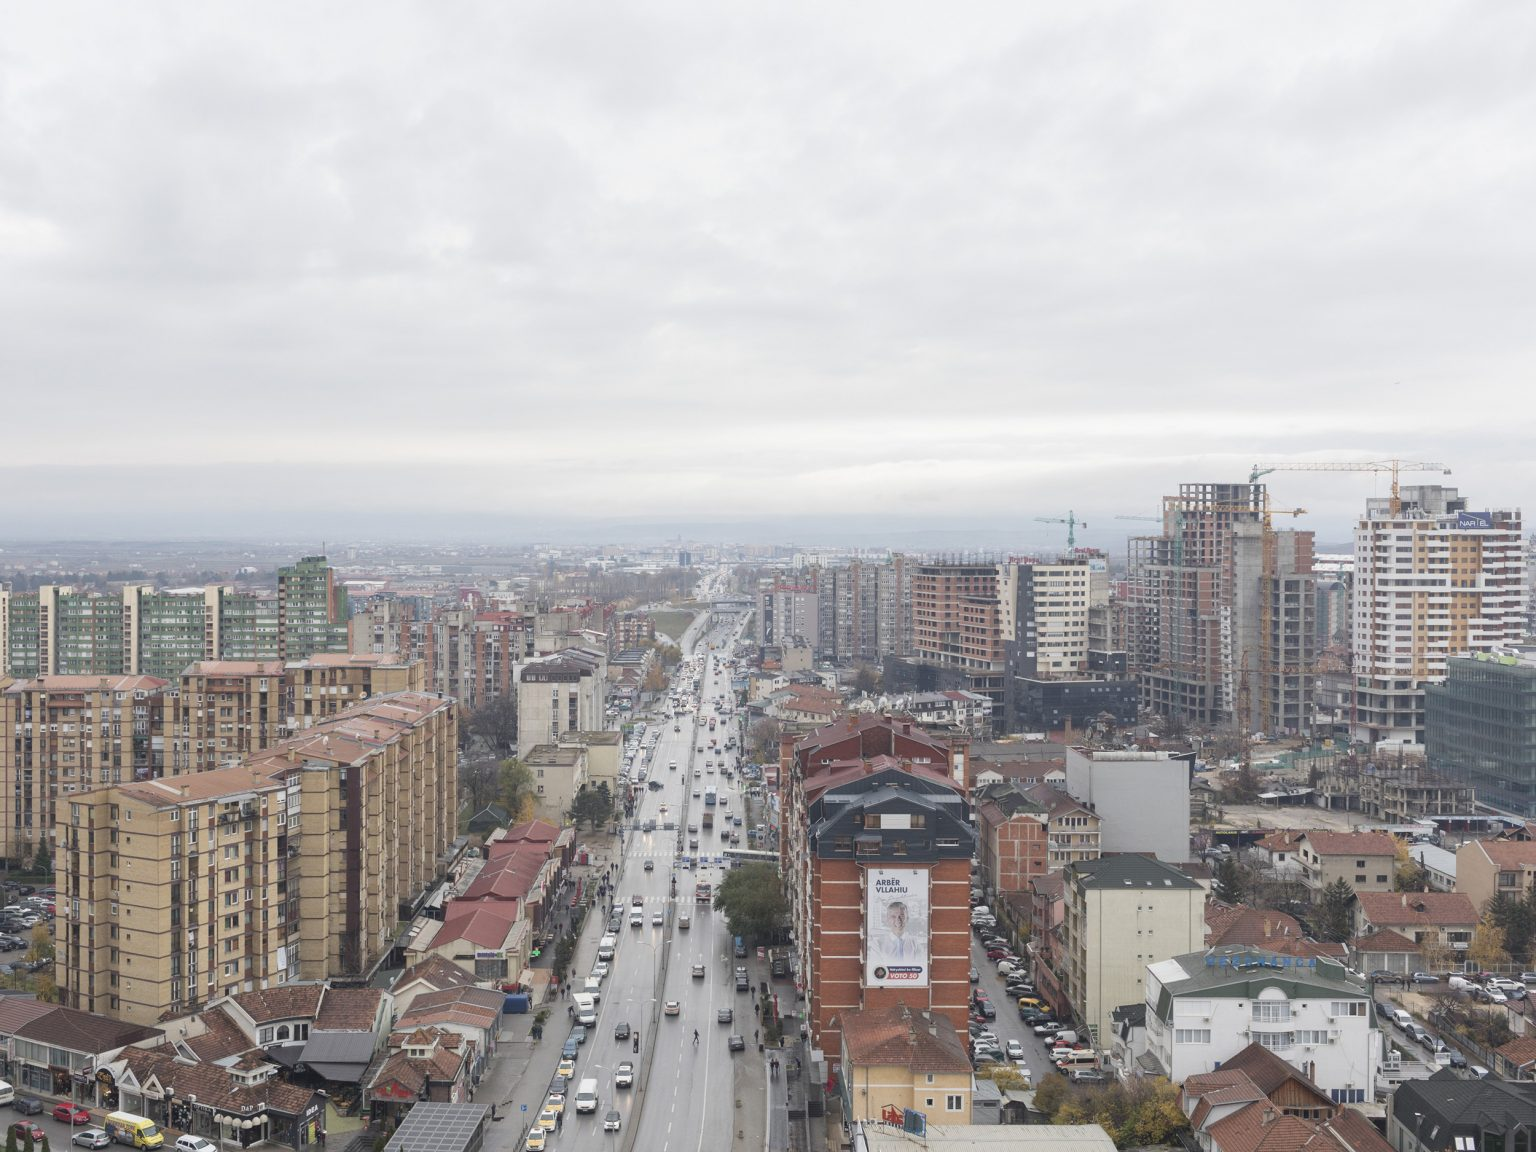 A view of Prishtina/Priština from the new St. Mother Theresa Cathedral, consecrated on September 5th, on the 20th anniversary of the saint's death. There are around 65,000 Catholics in Kosovo, out of a population of approximately two million. Most Kosovars are ethnic Albanians, like Mother Teresa. Almost 95 per cent are Muslim. The Holy See does not currently recognise Kosovo as a sovereign state.